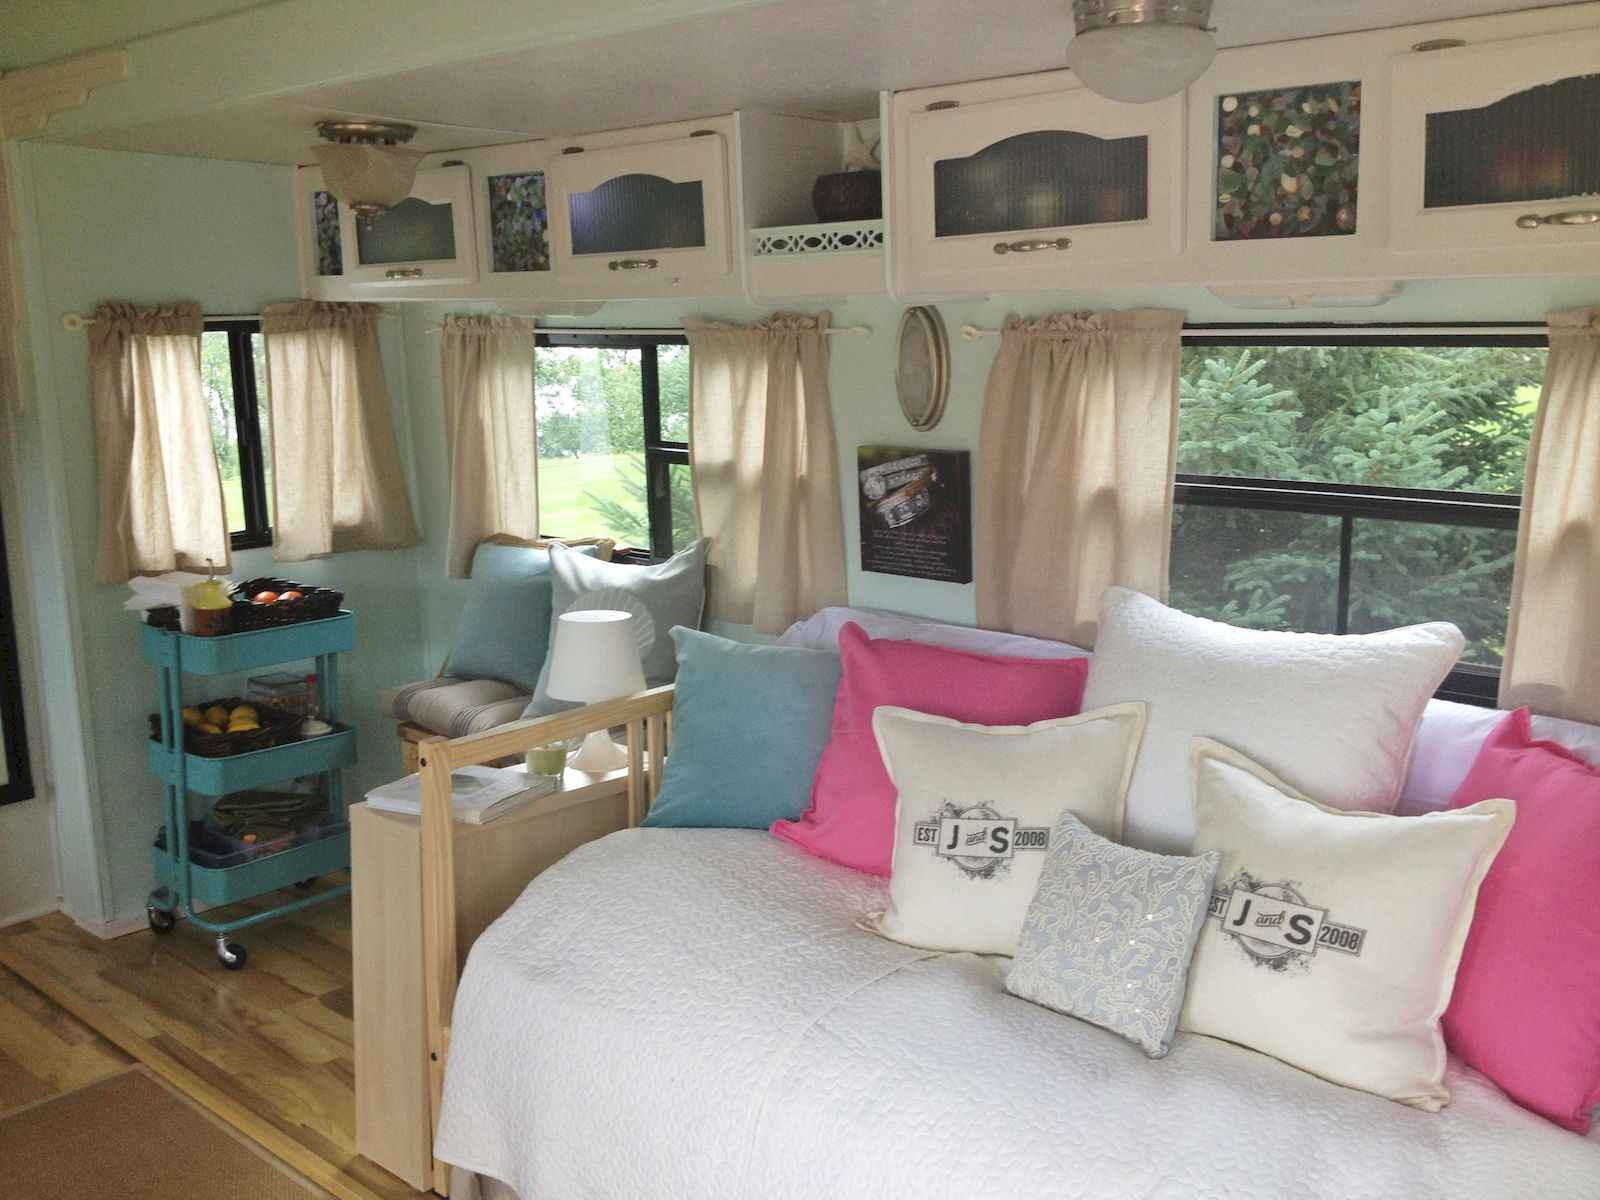 70 Stunning RV Living Camper Room Ideas Decorations Make Your Summer Awesome (1)